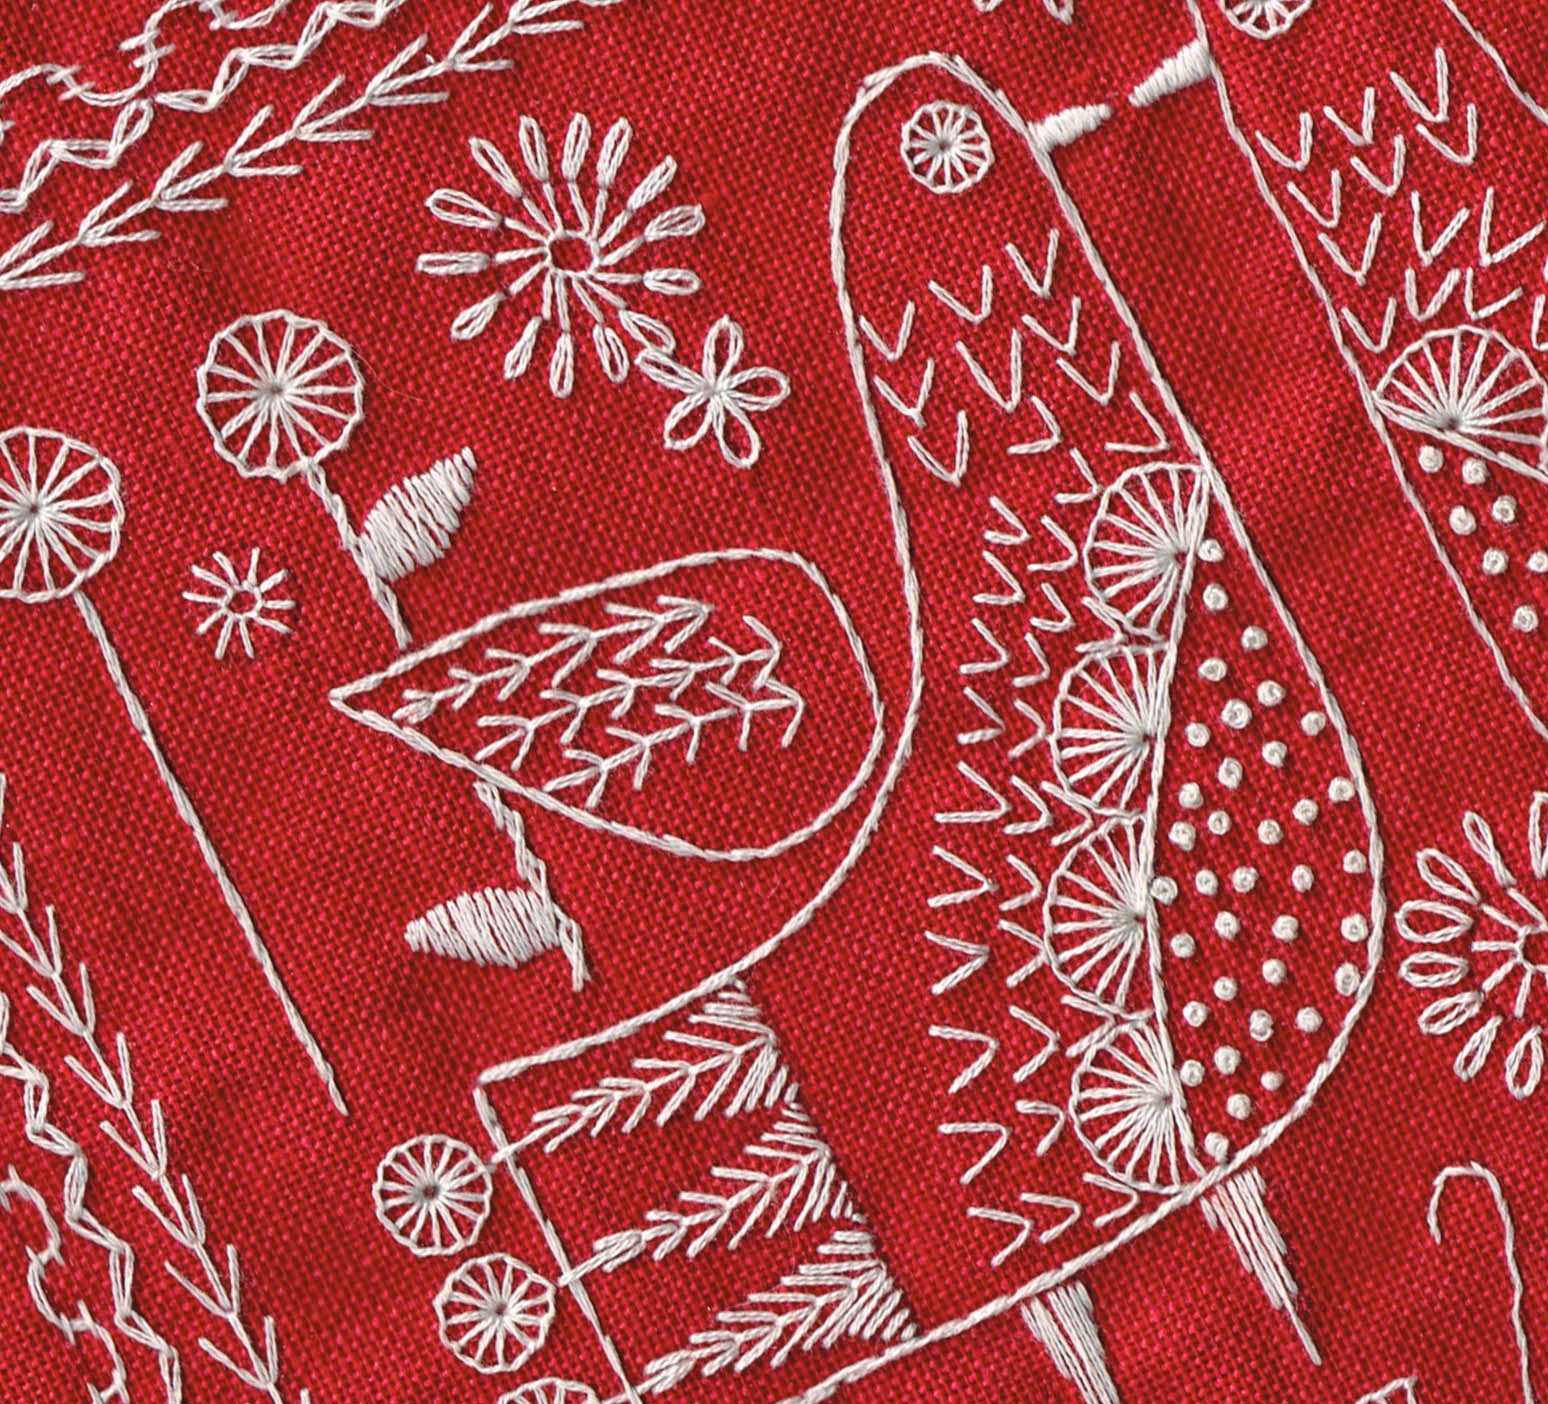 Sampler 2014 worked in white on red linen